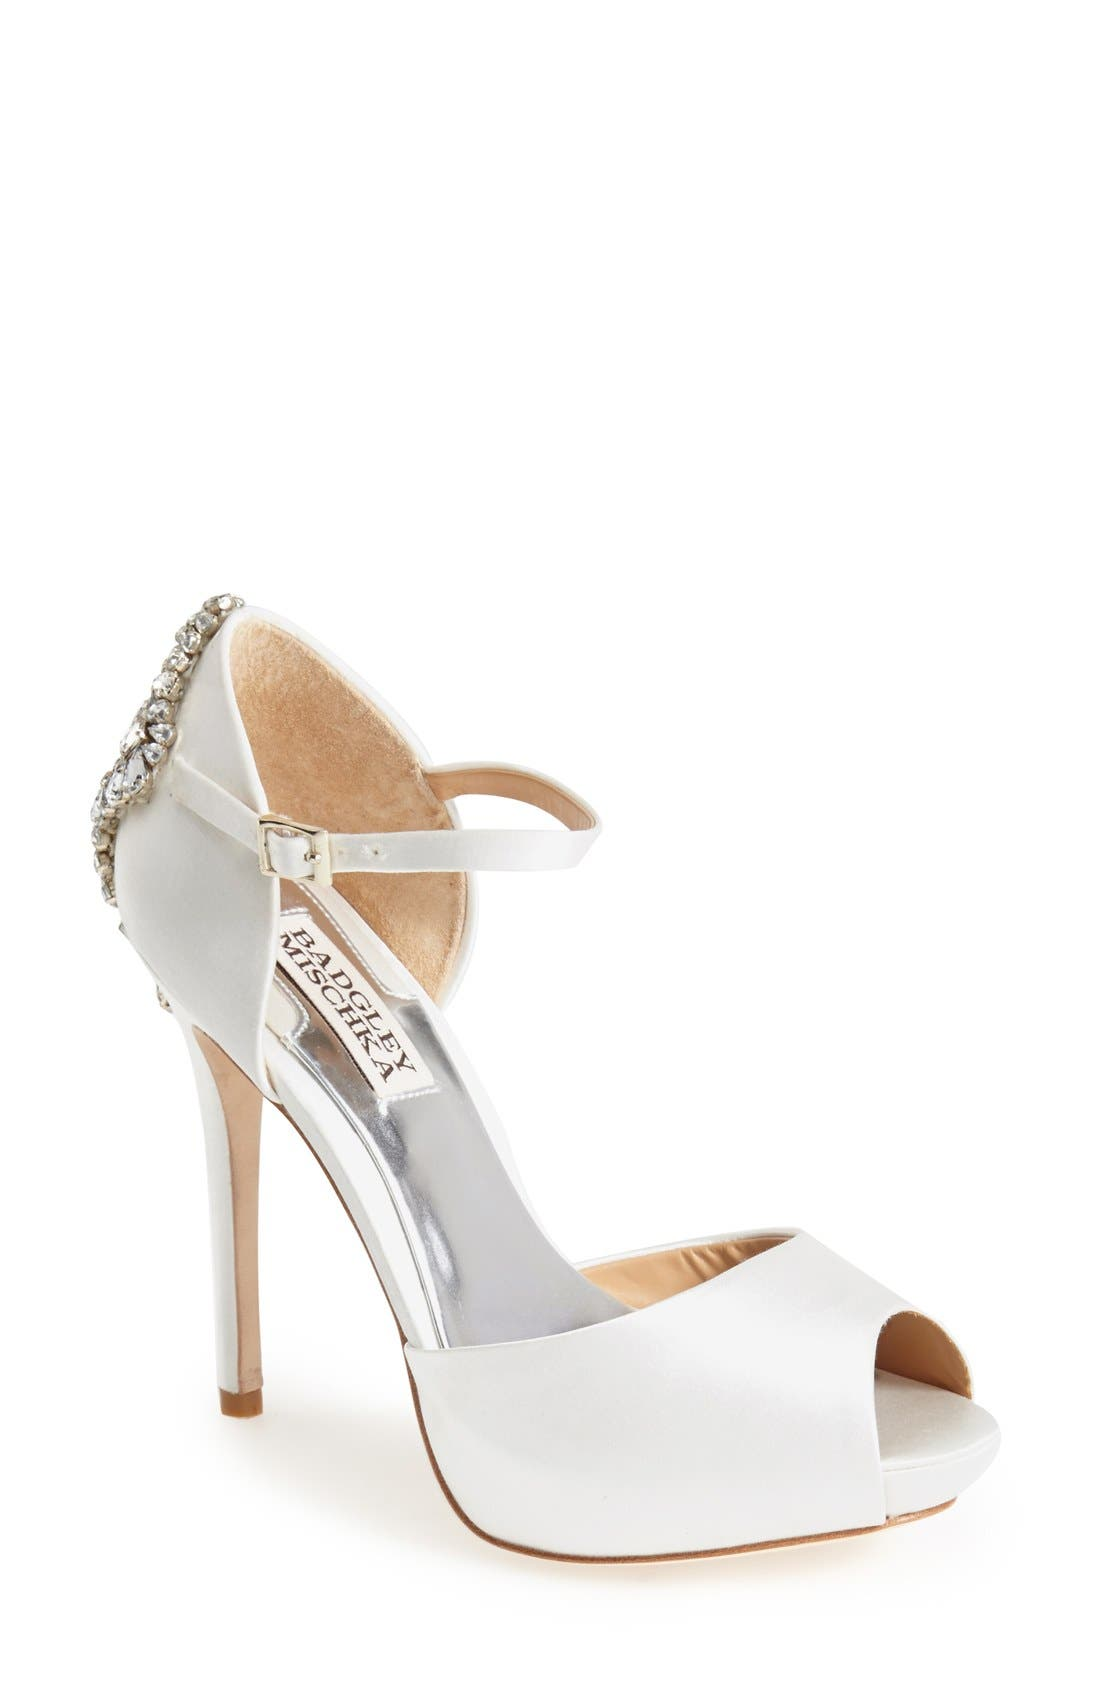 BADGLEY MISCHKA COLLECTION, Badgley Mischka 'Gene' Crystal Back Ankle Strap Pump, Main thumbnail 1, color, 142